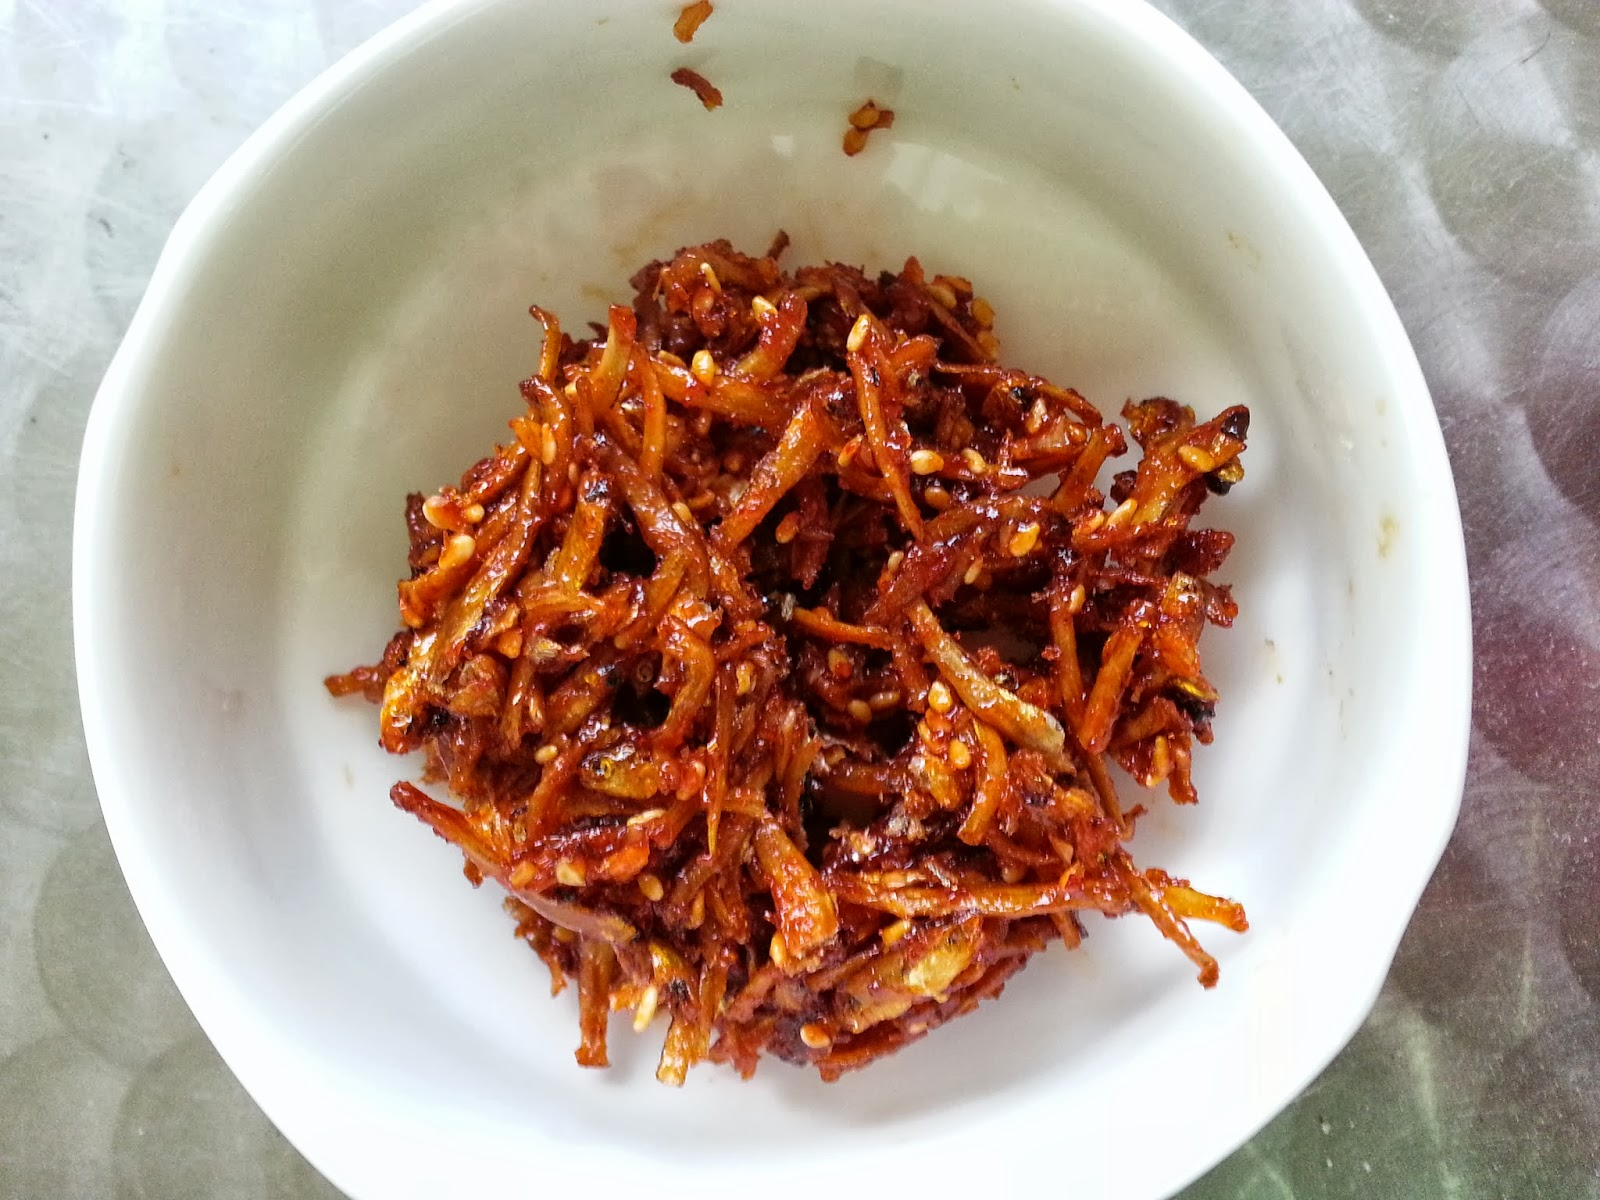 Culinary Kitchenette: Korean Stir-fried Anchovies by Jane Goh